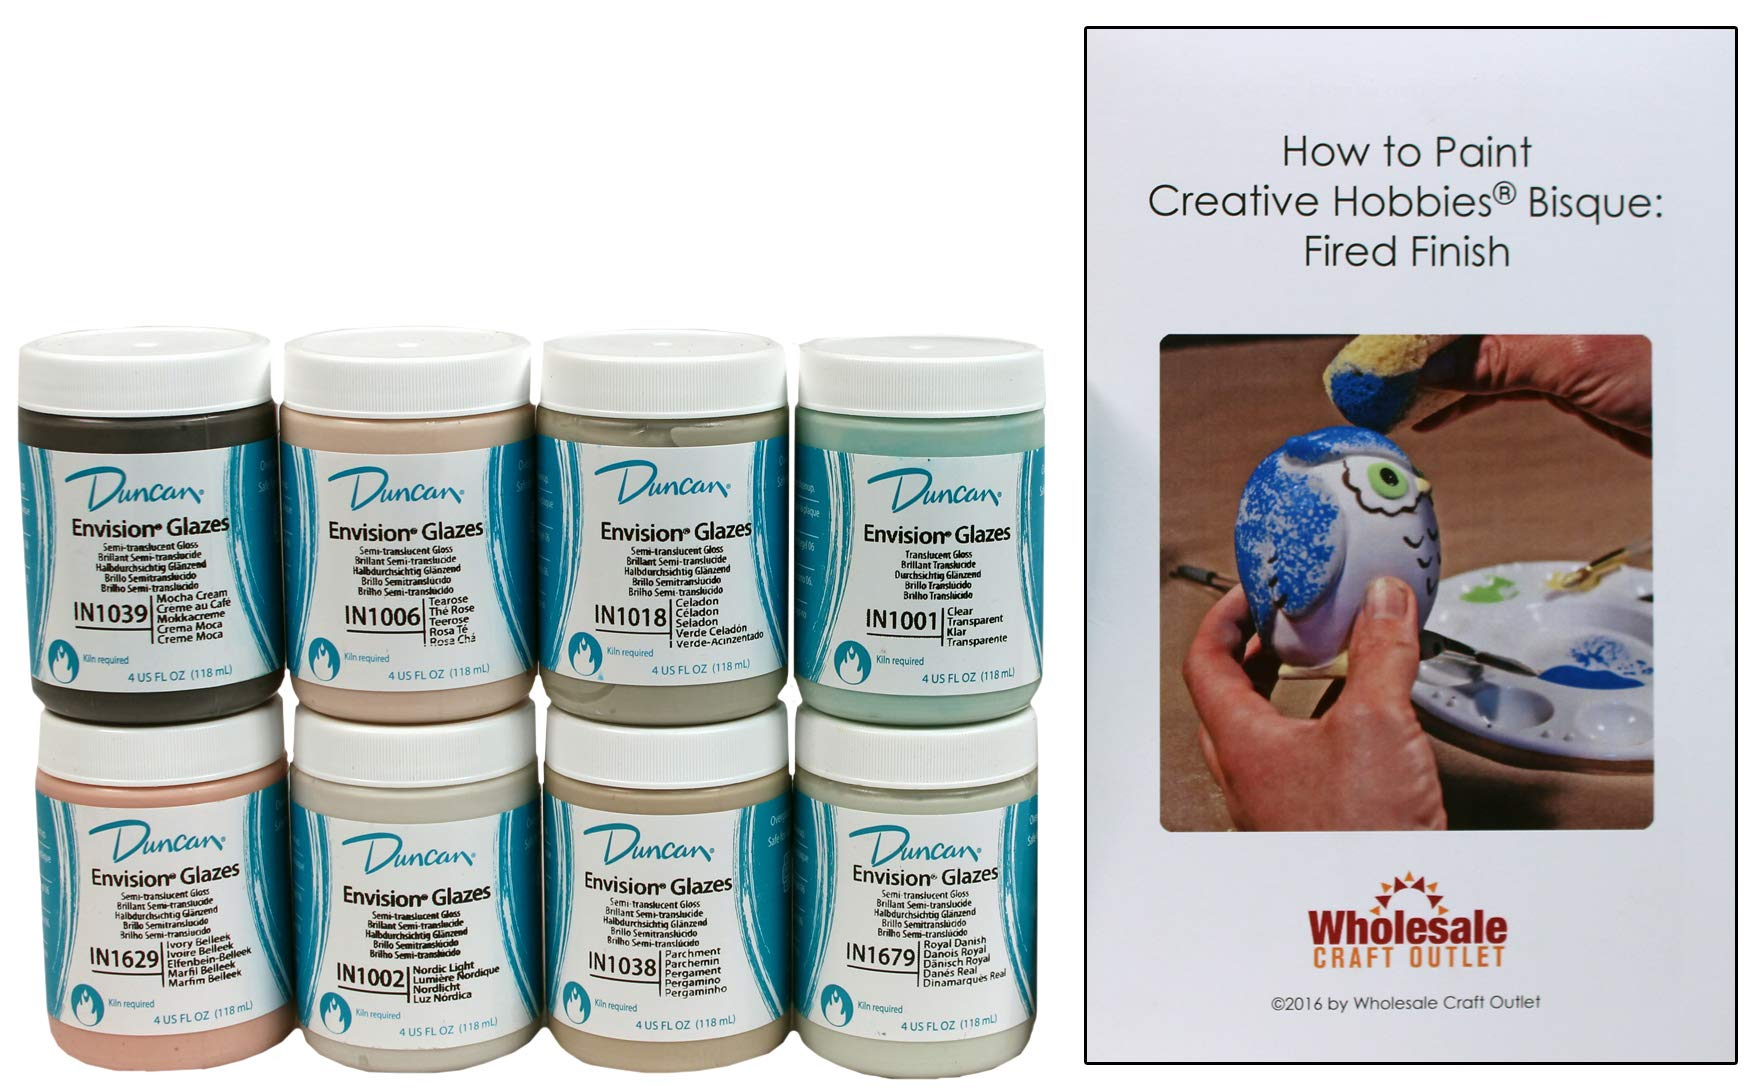 Duncan INKIT-4 Envision Celadons Glaze Kit for Ceramics - Set of 8 Best Selling Colors in 4 Ounce Jars with Free How to Paint Ceramics Booklet